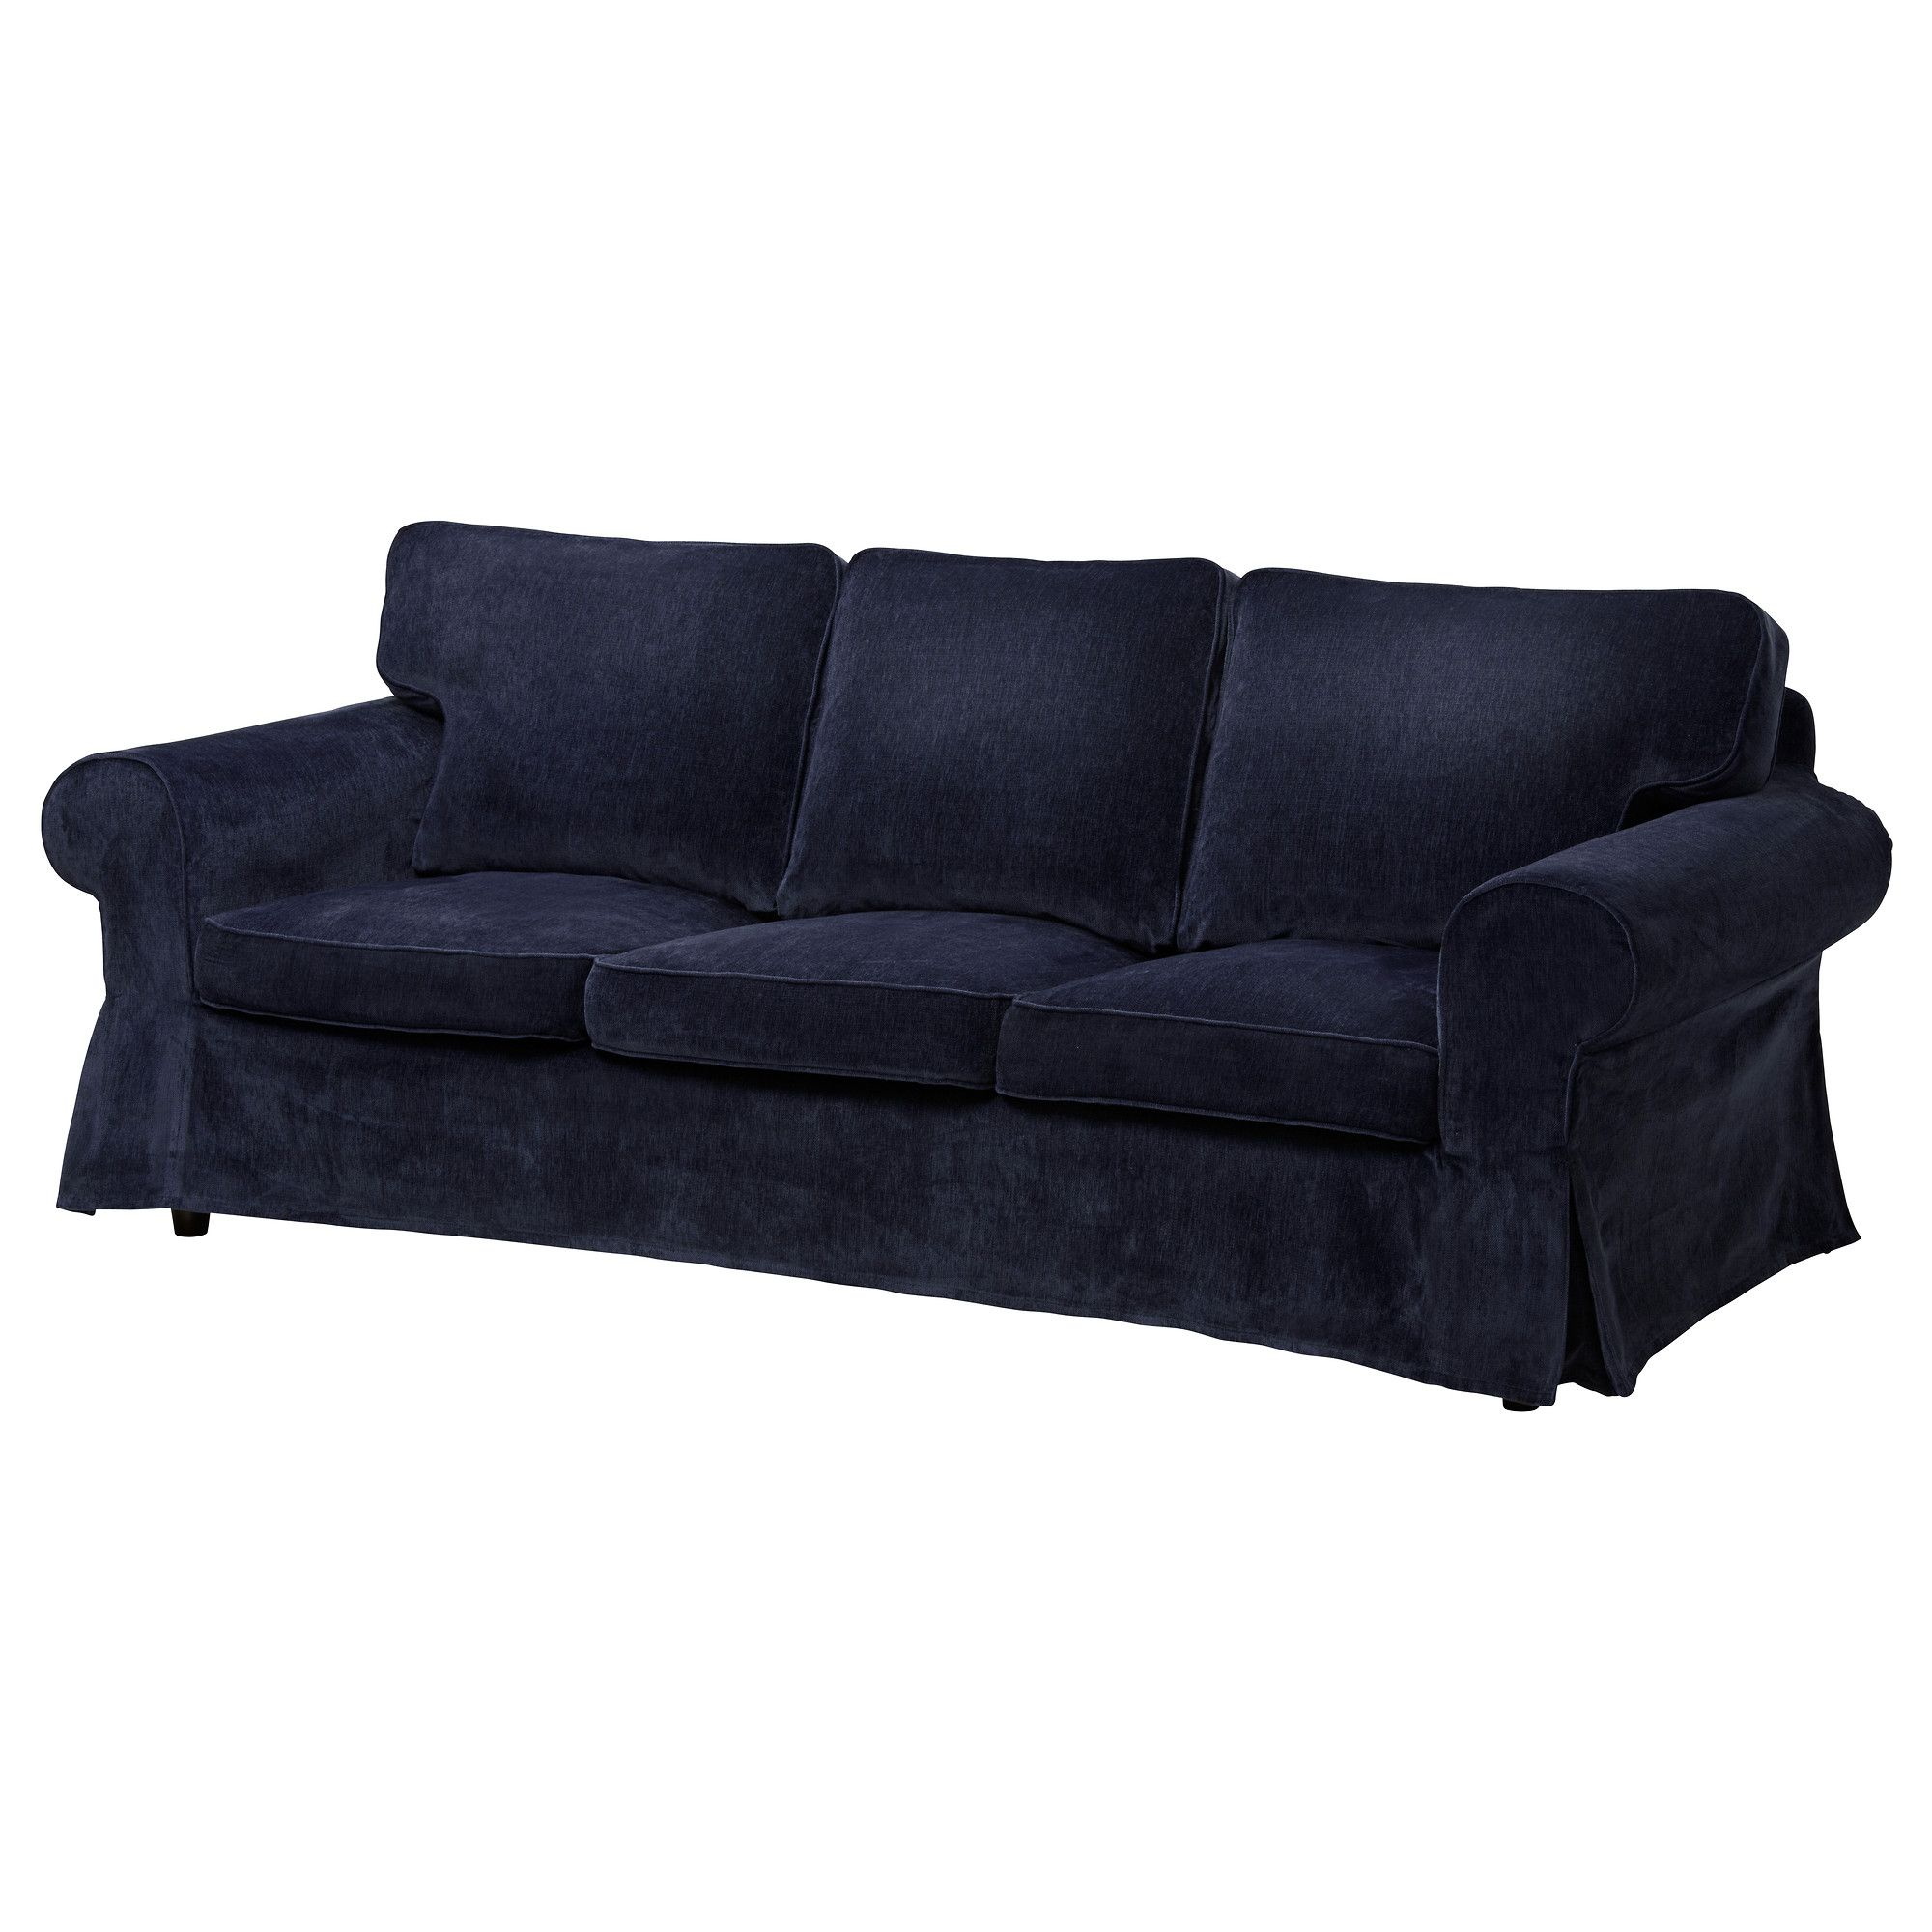 Ikea Us Furniture And Home Furnishings Ektorp Sofa Ektorp Sofa Cover Ikea Ektorp Sofa